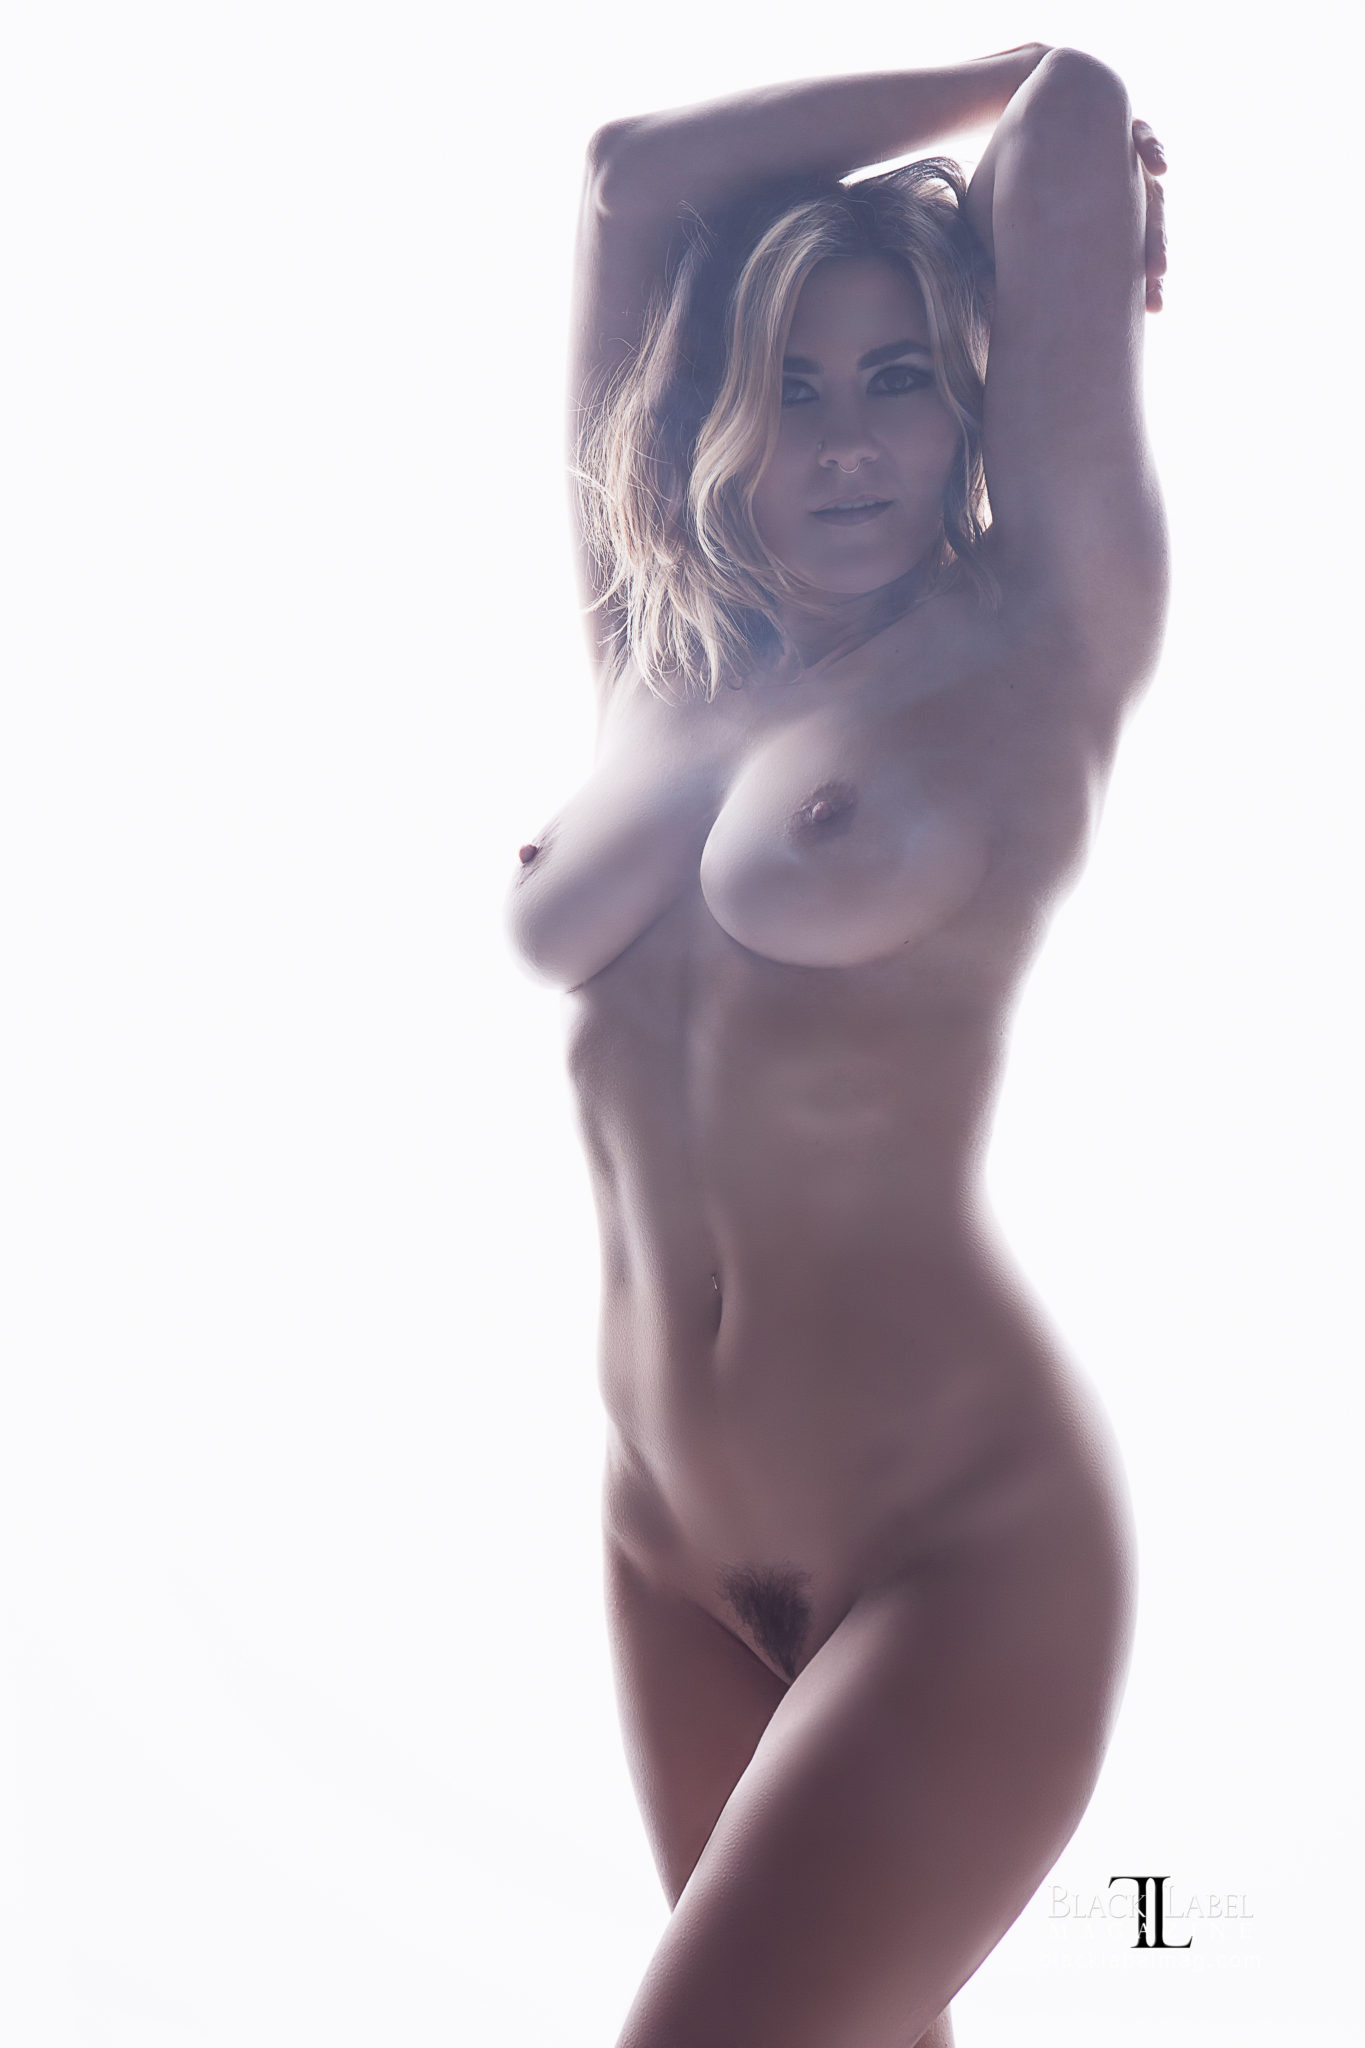 naked girls, nude woman, busty girls, natural tits